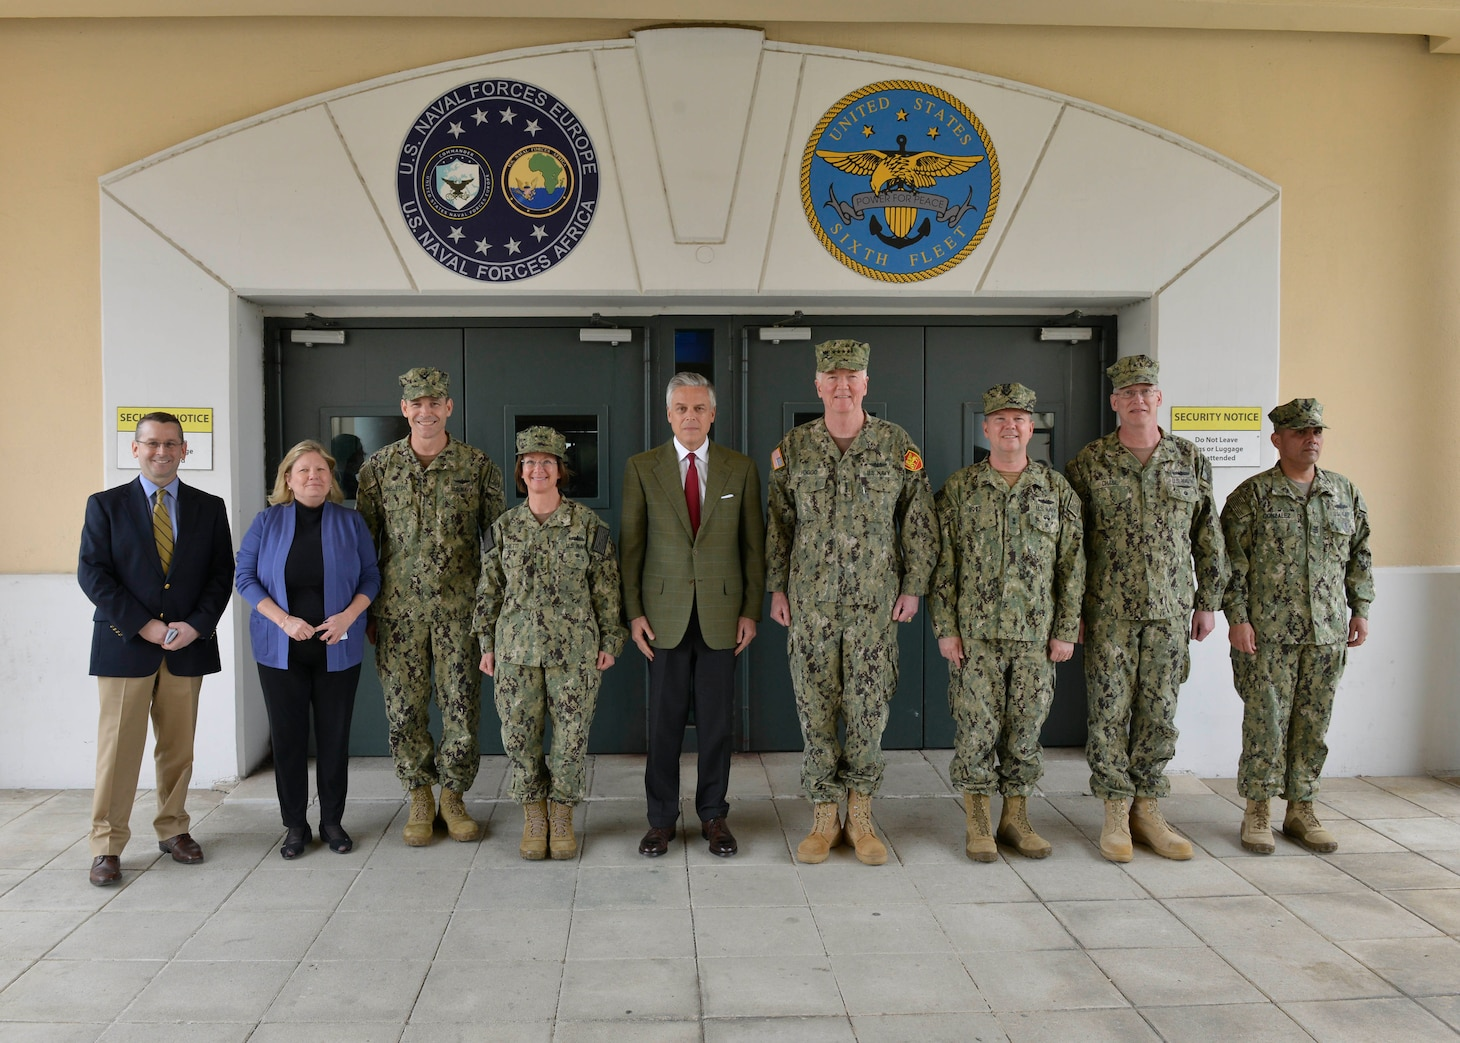 U.S. Ambassador to Russia, Jon M. Huntsman Jr., visits Naval Support Activity Naples, Italy, April 22, 2019.